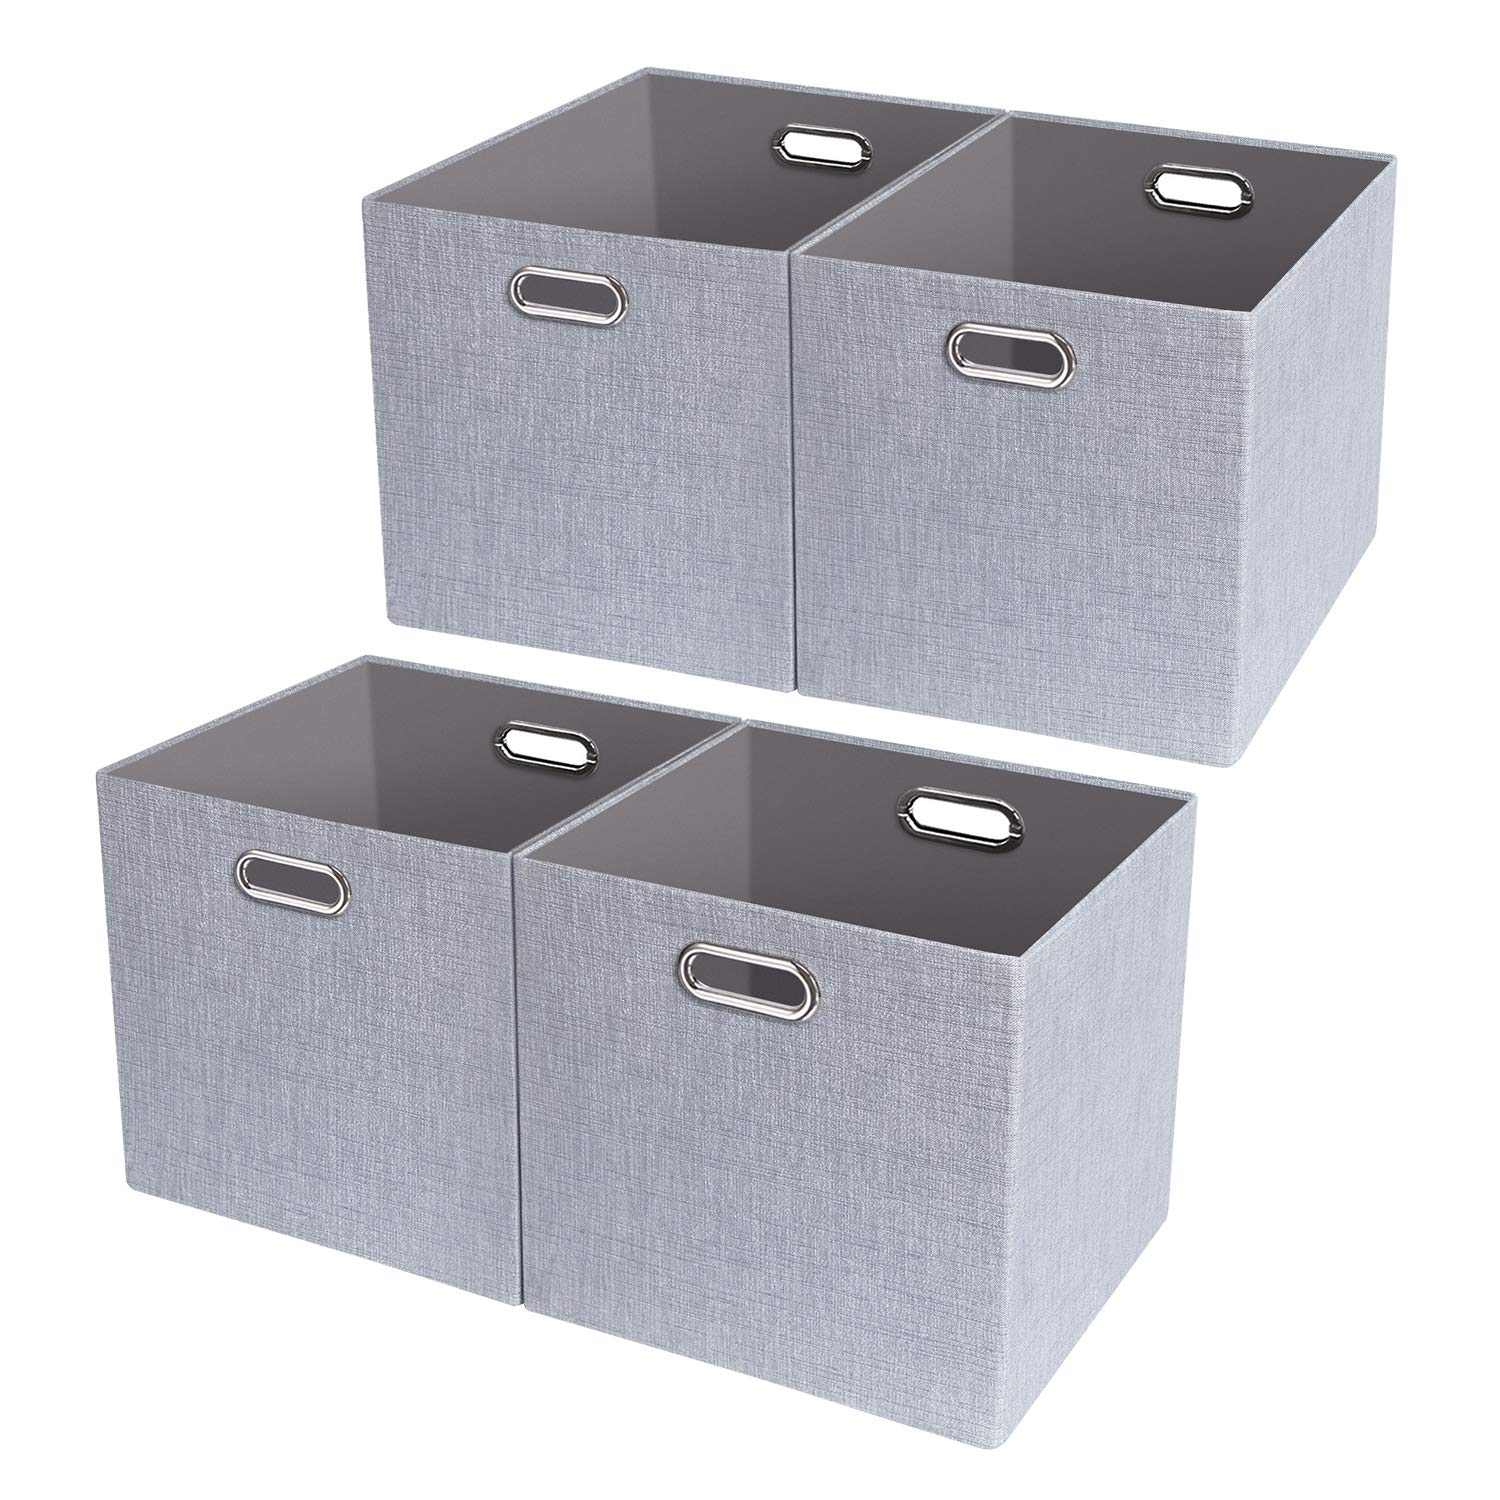 Posprica Foldable Storage Bins,11×11 Fabric Storage Boxes Drawers Cubes Container, Thick and Heavy Duty Organizer Baskets - 4pcs, Sliver Grey